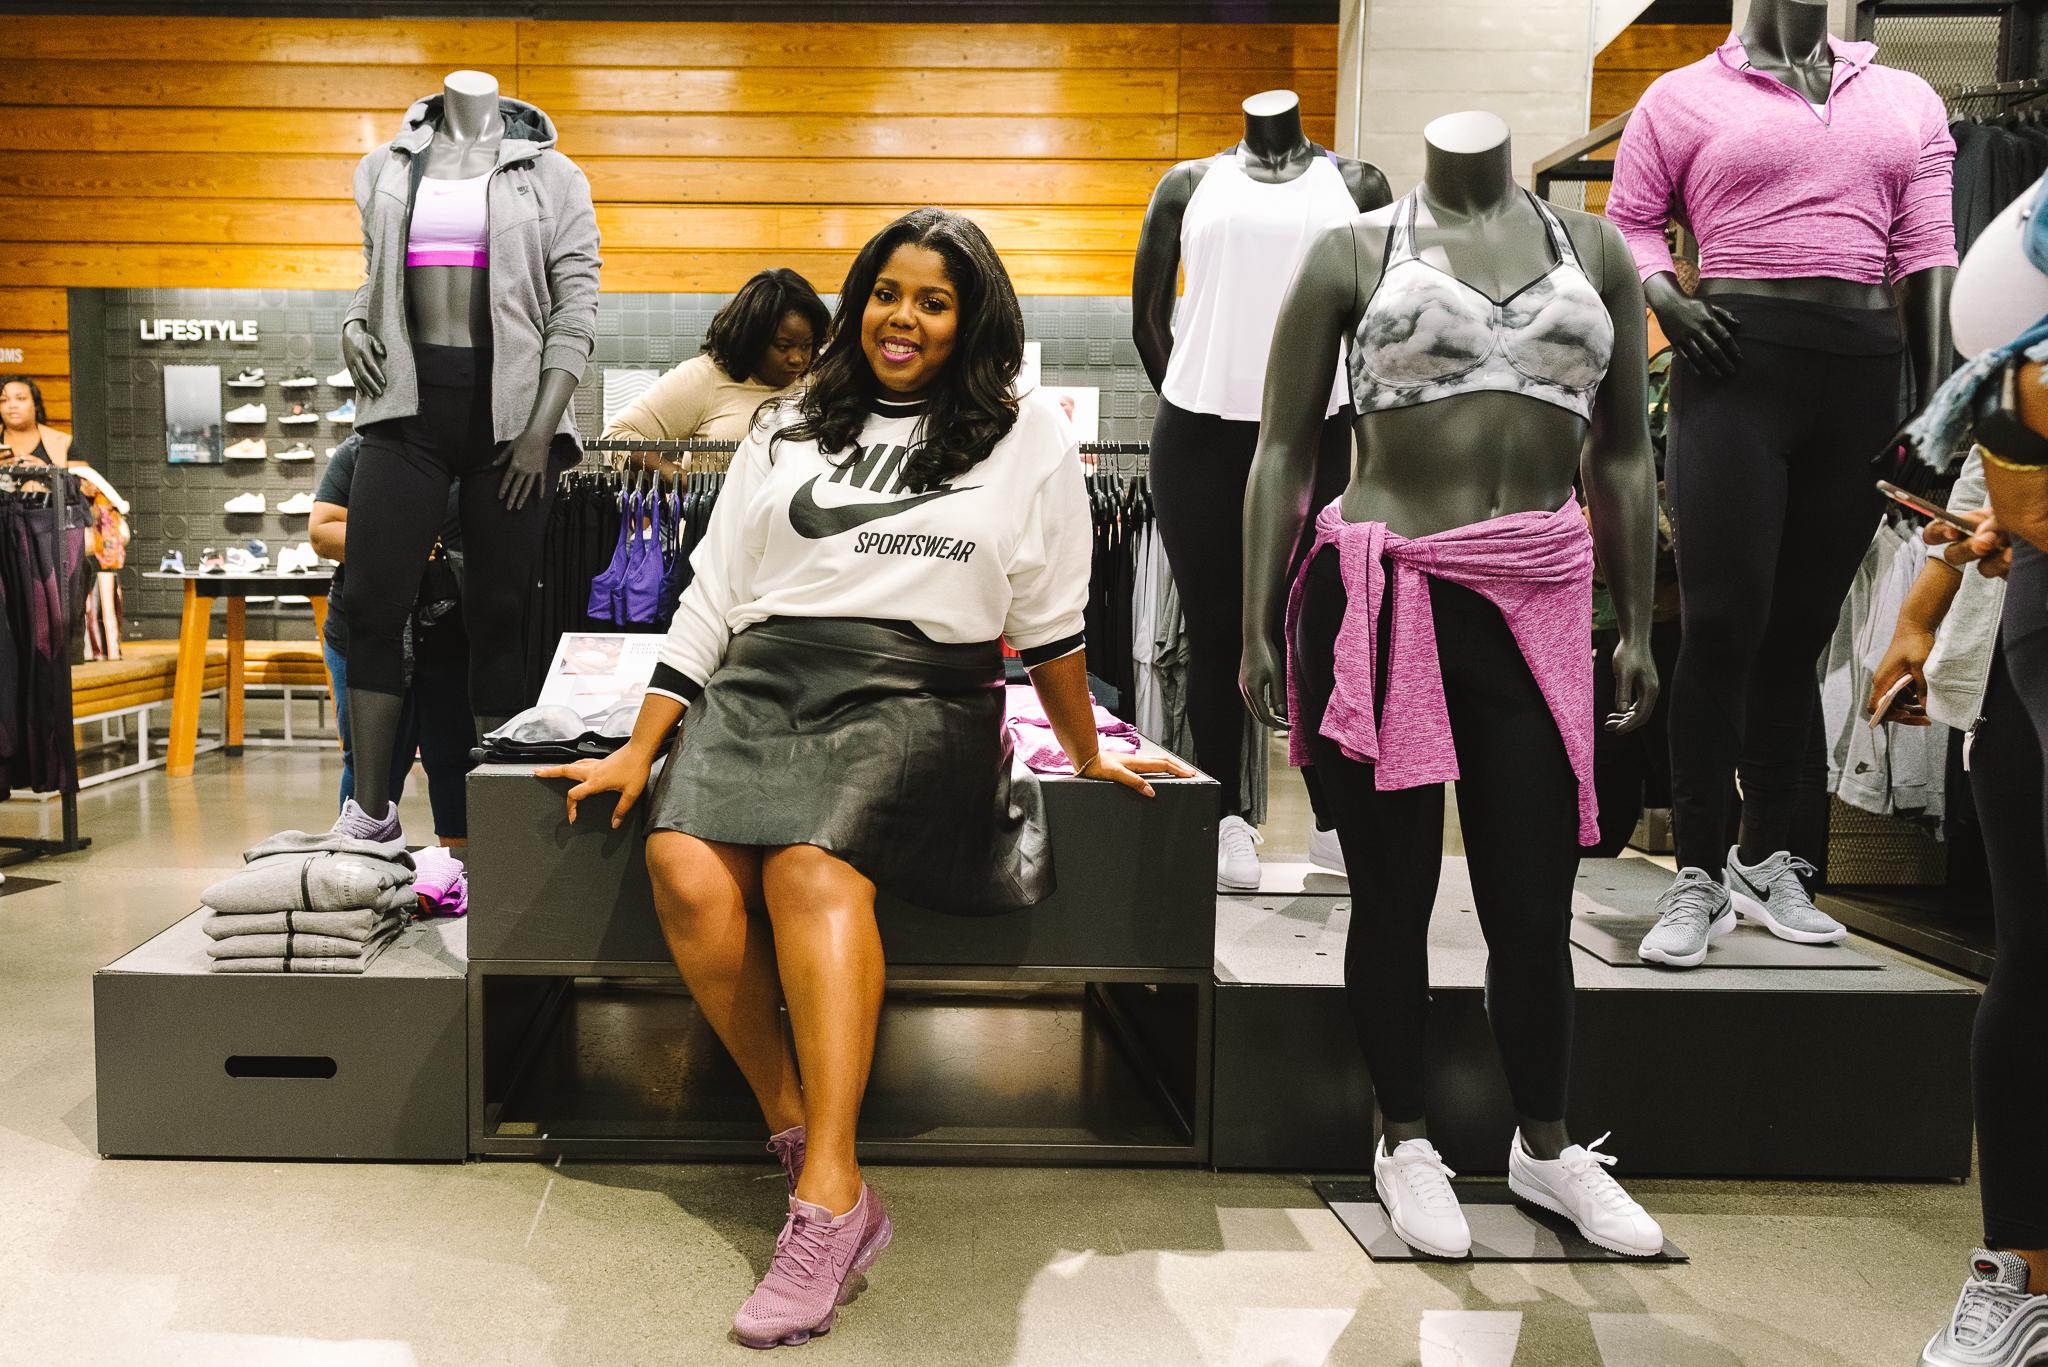 Hayet Rida Chicago Nike Plus Size Line Event Fashion Lifestyle Blogger Nike Air Society Vapor Max 67.jpg